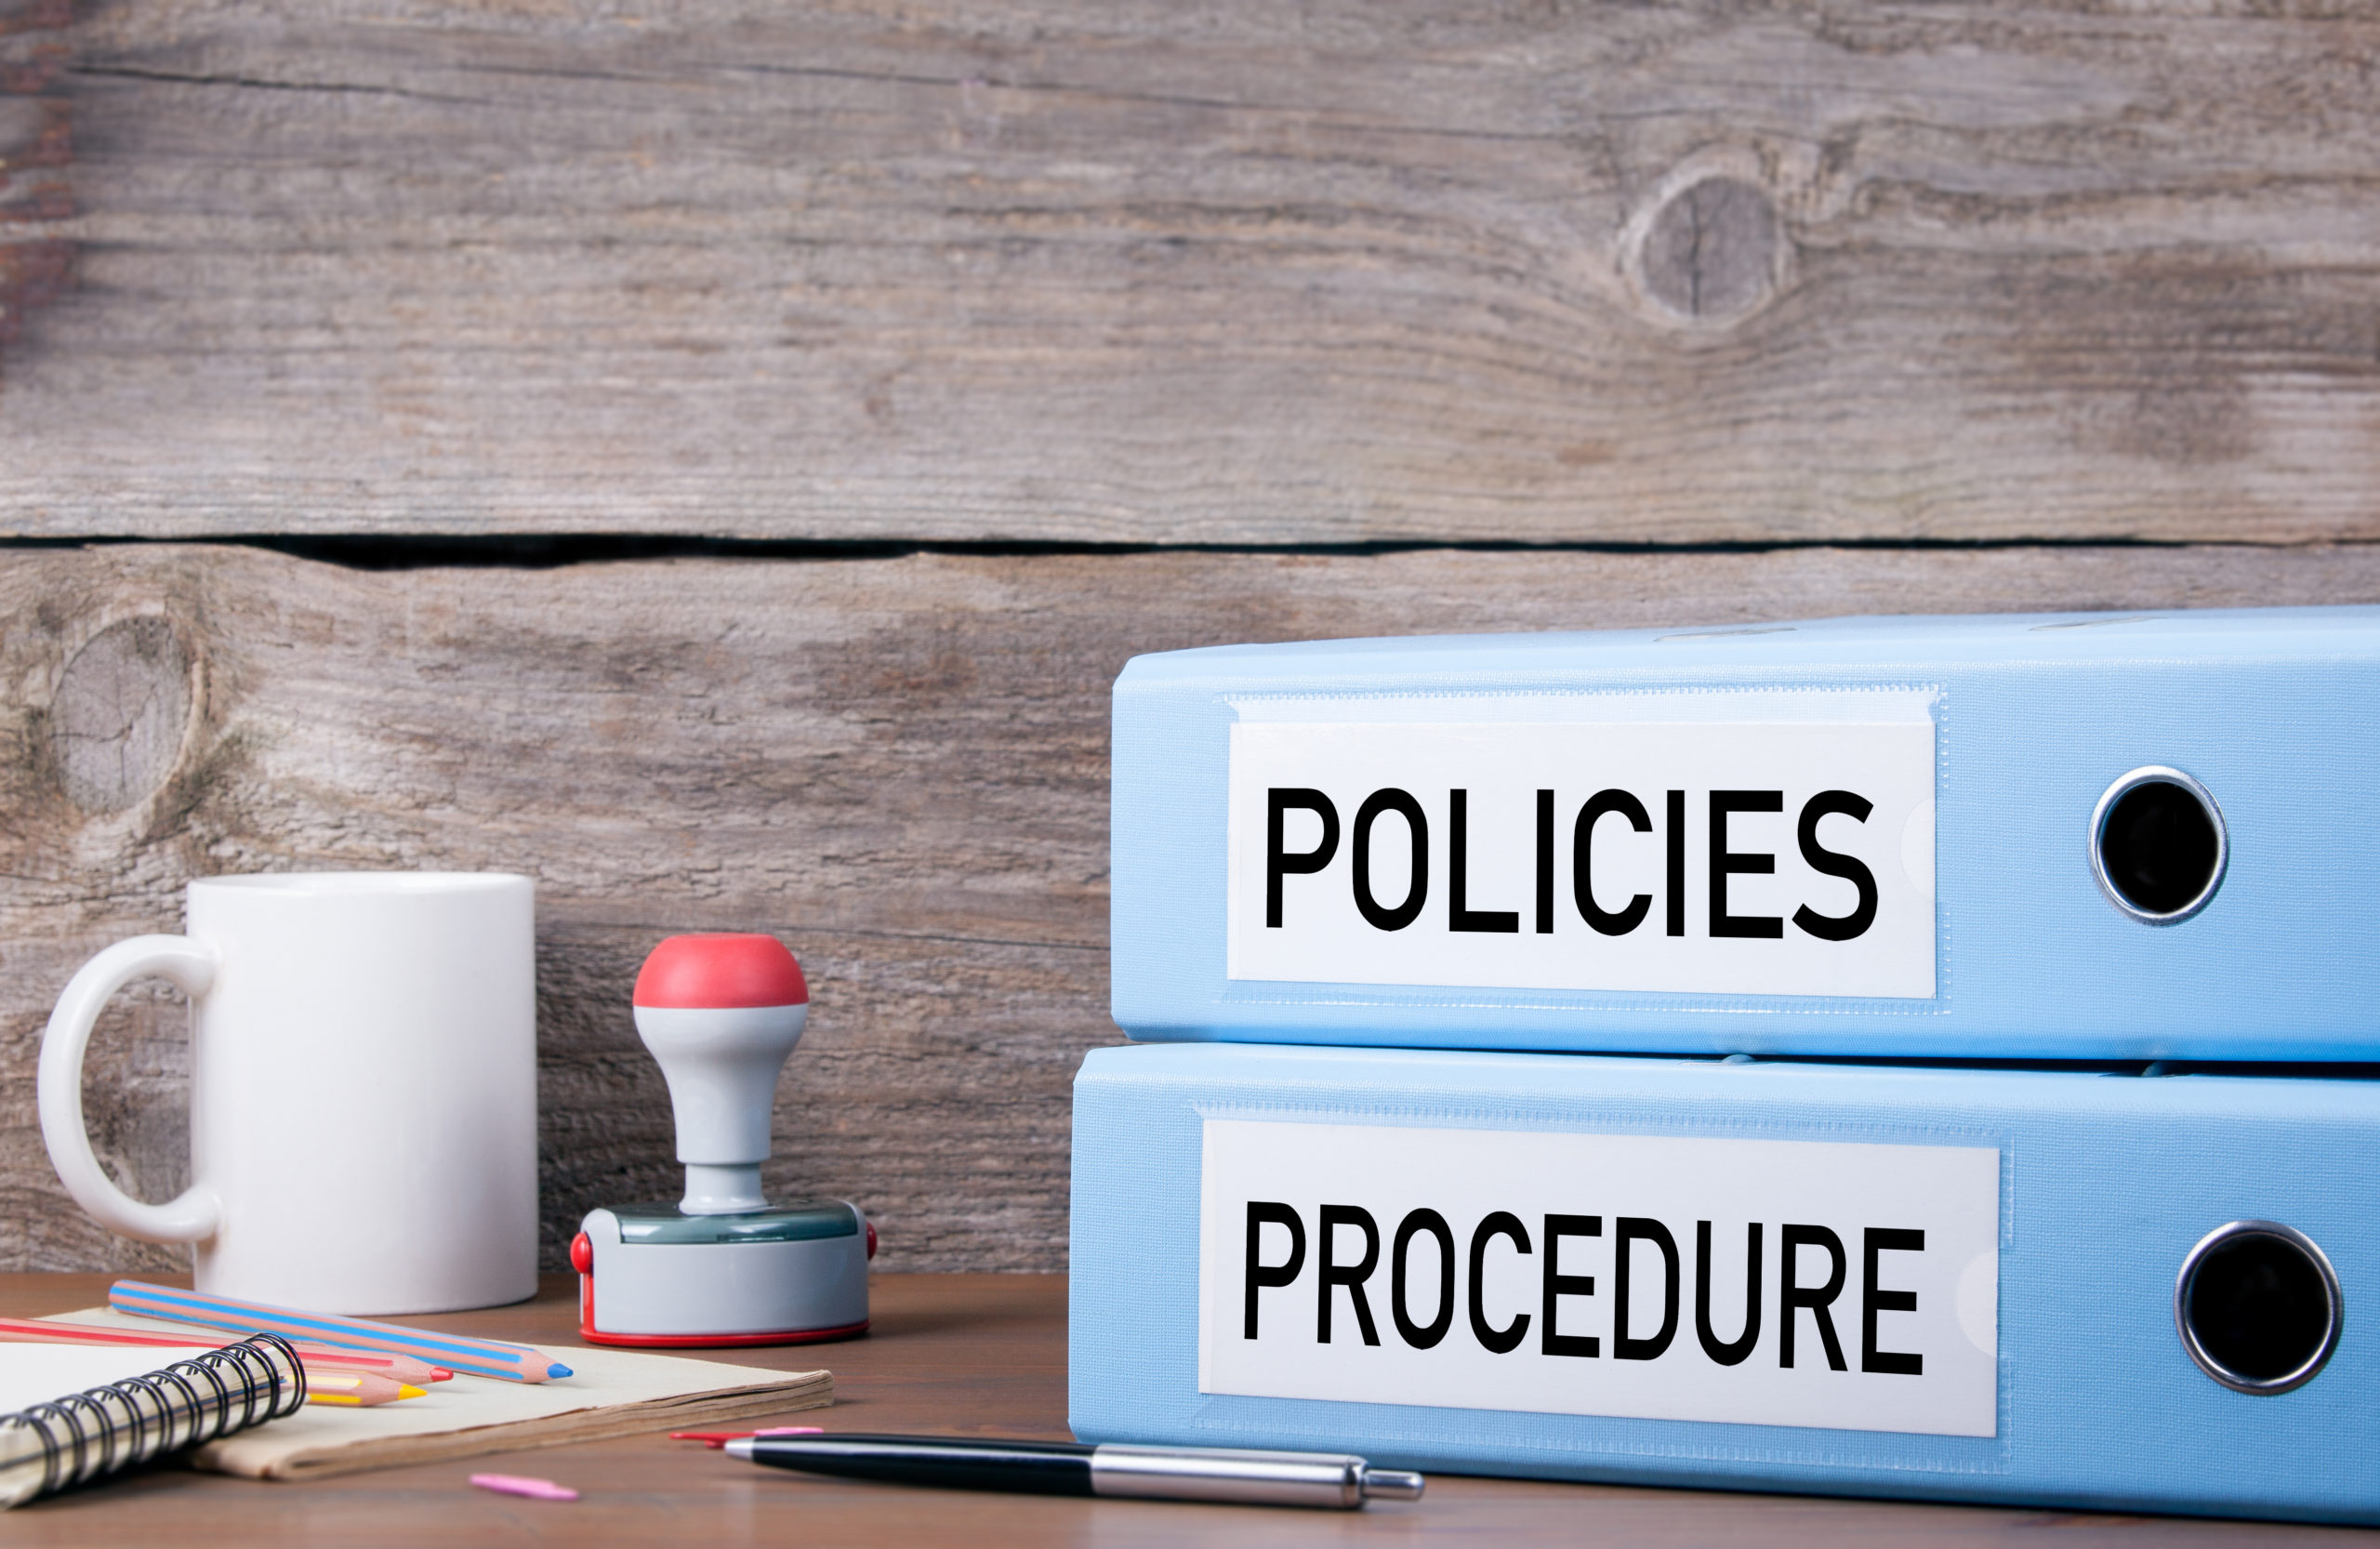 Policies And Procedure. Two Binders On Desk In The Office. Busin